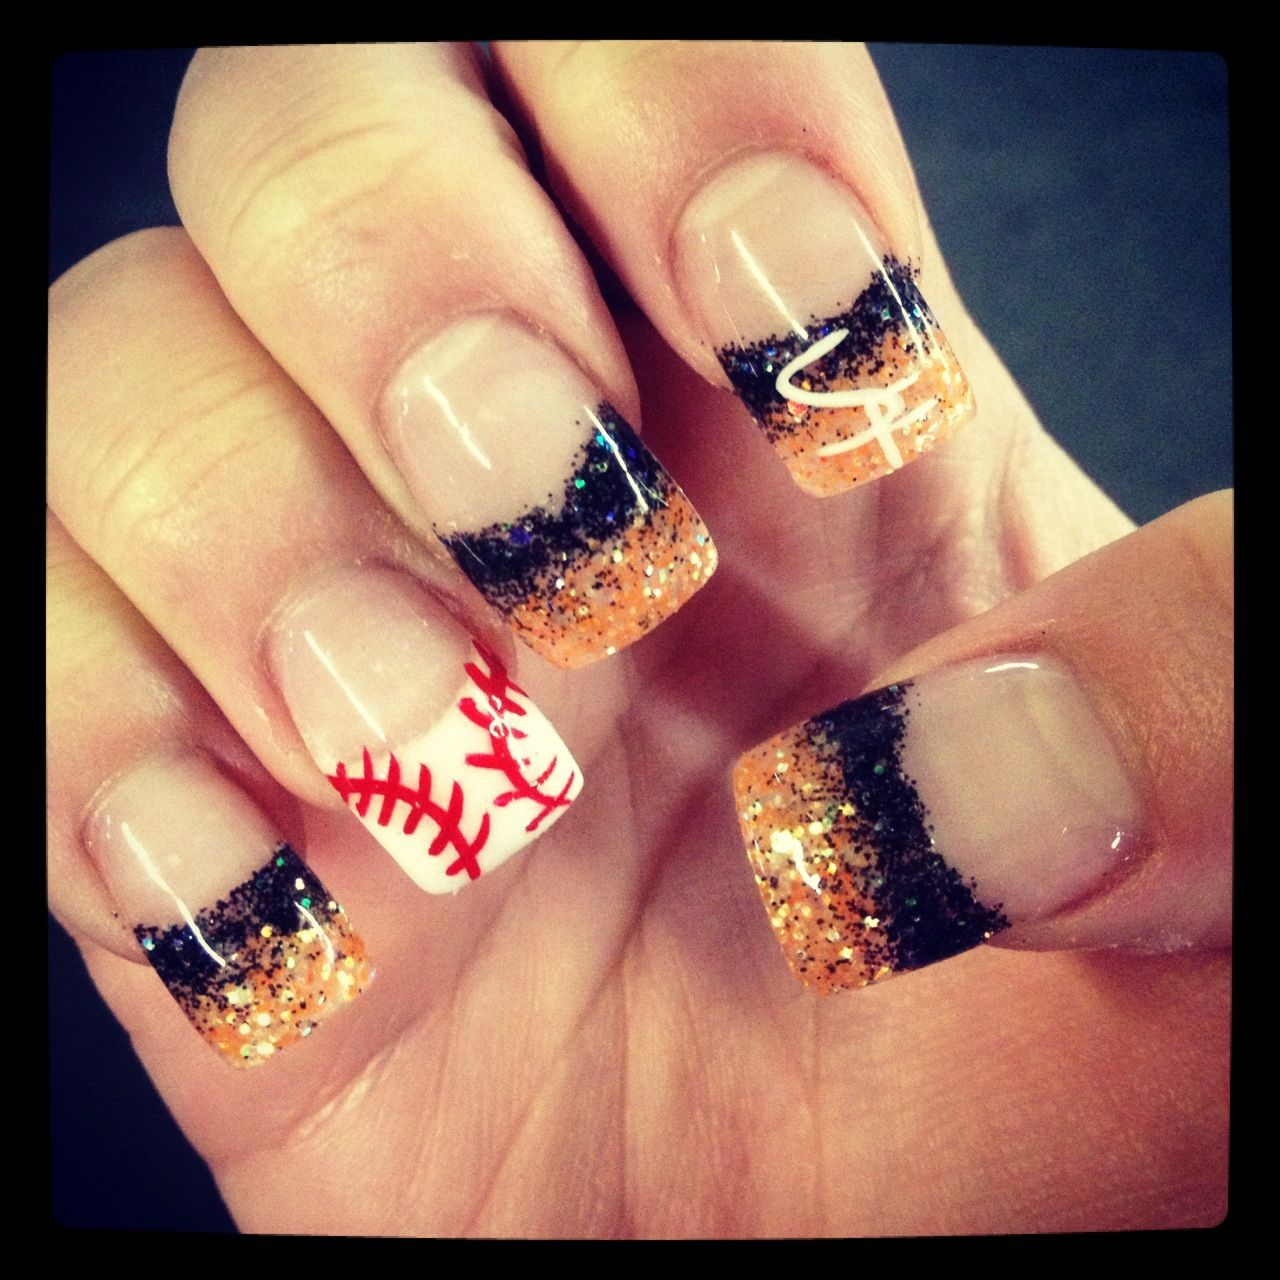 SF GIANTS NAILS | Nails | Pinterest | Sf giants nails, Makeup and ...